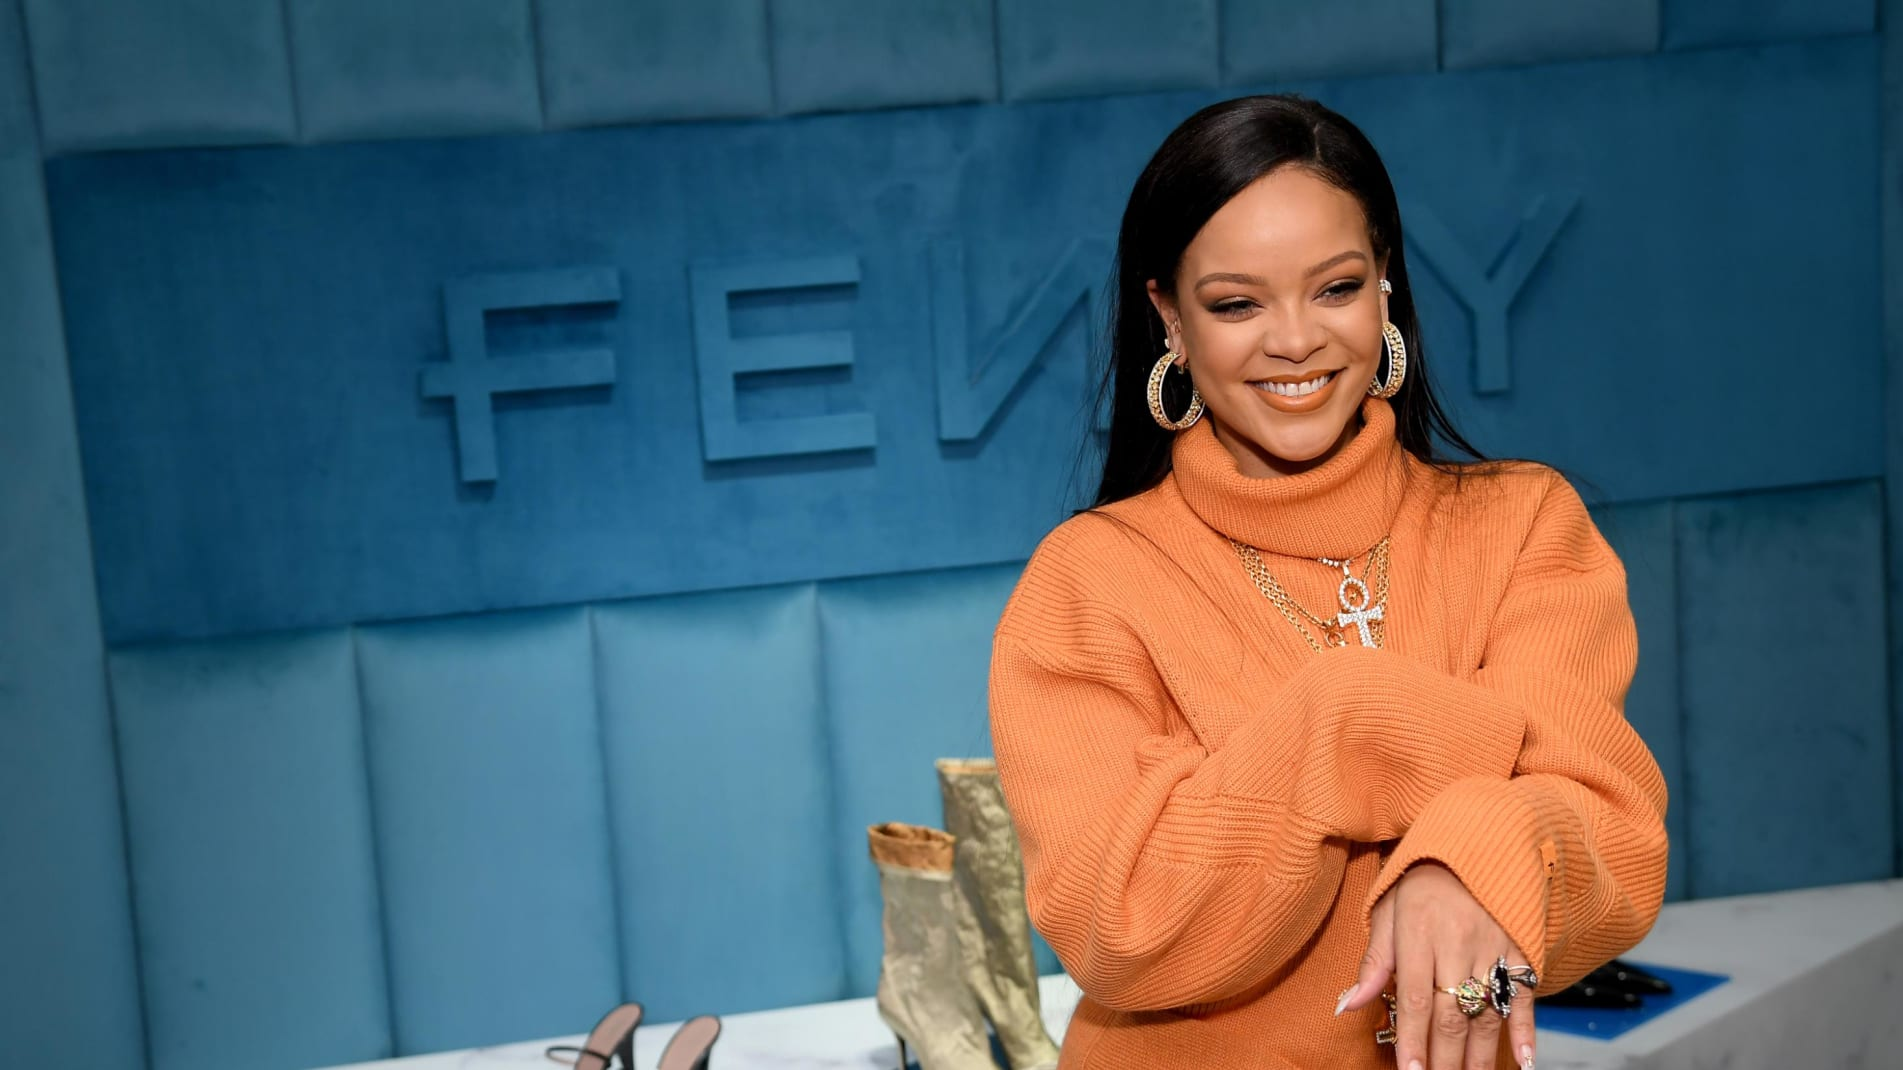 Rihanna at the launch of the new Fenty collection, Fenty 2-20, at Bergdorf Goodman in New York City.